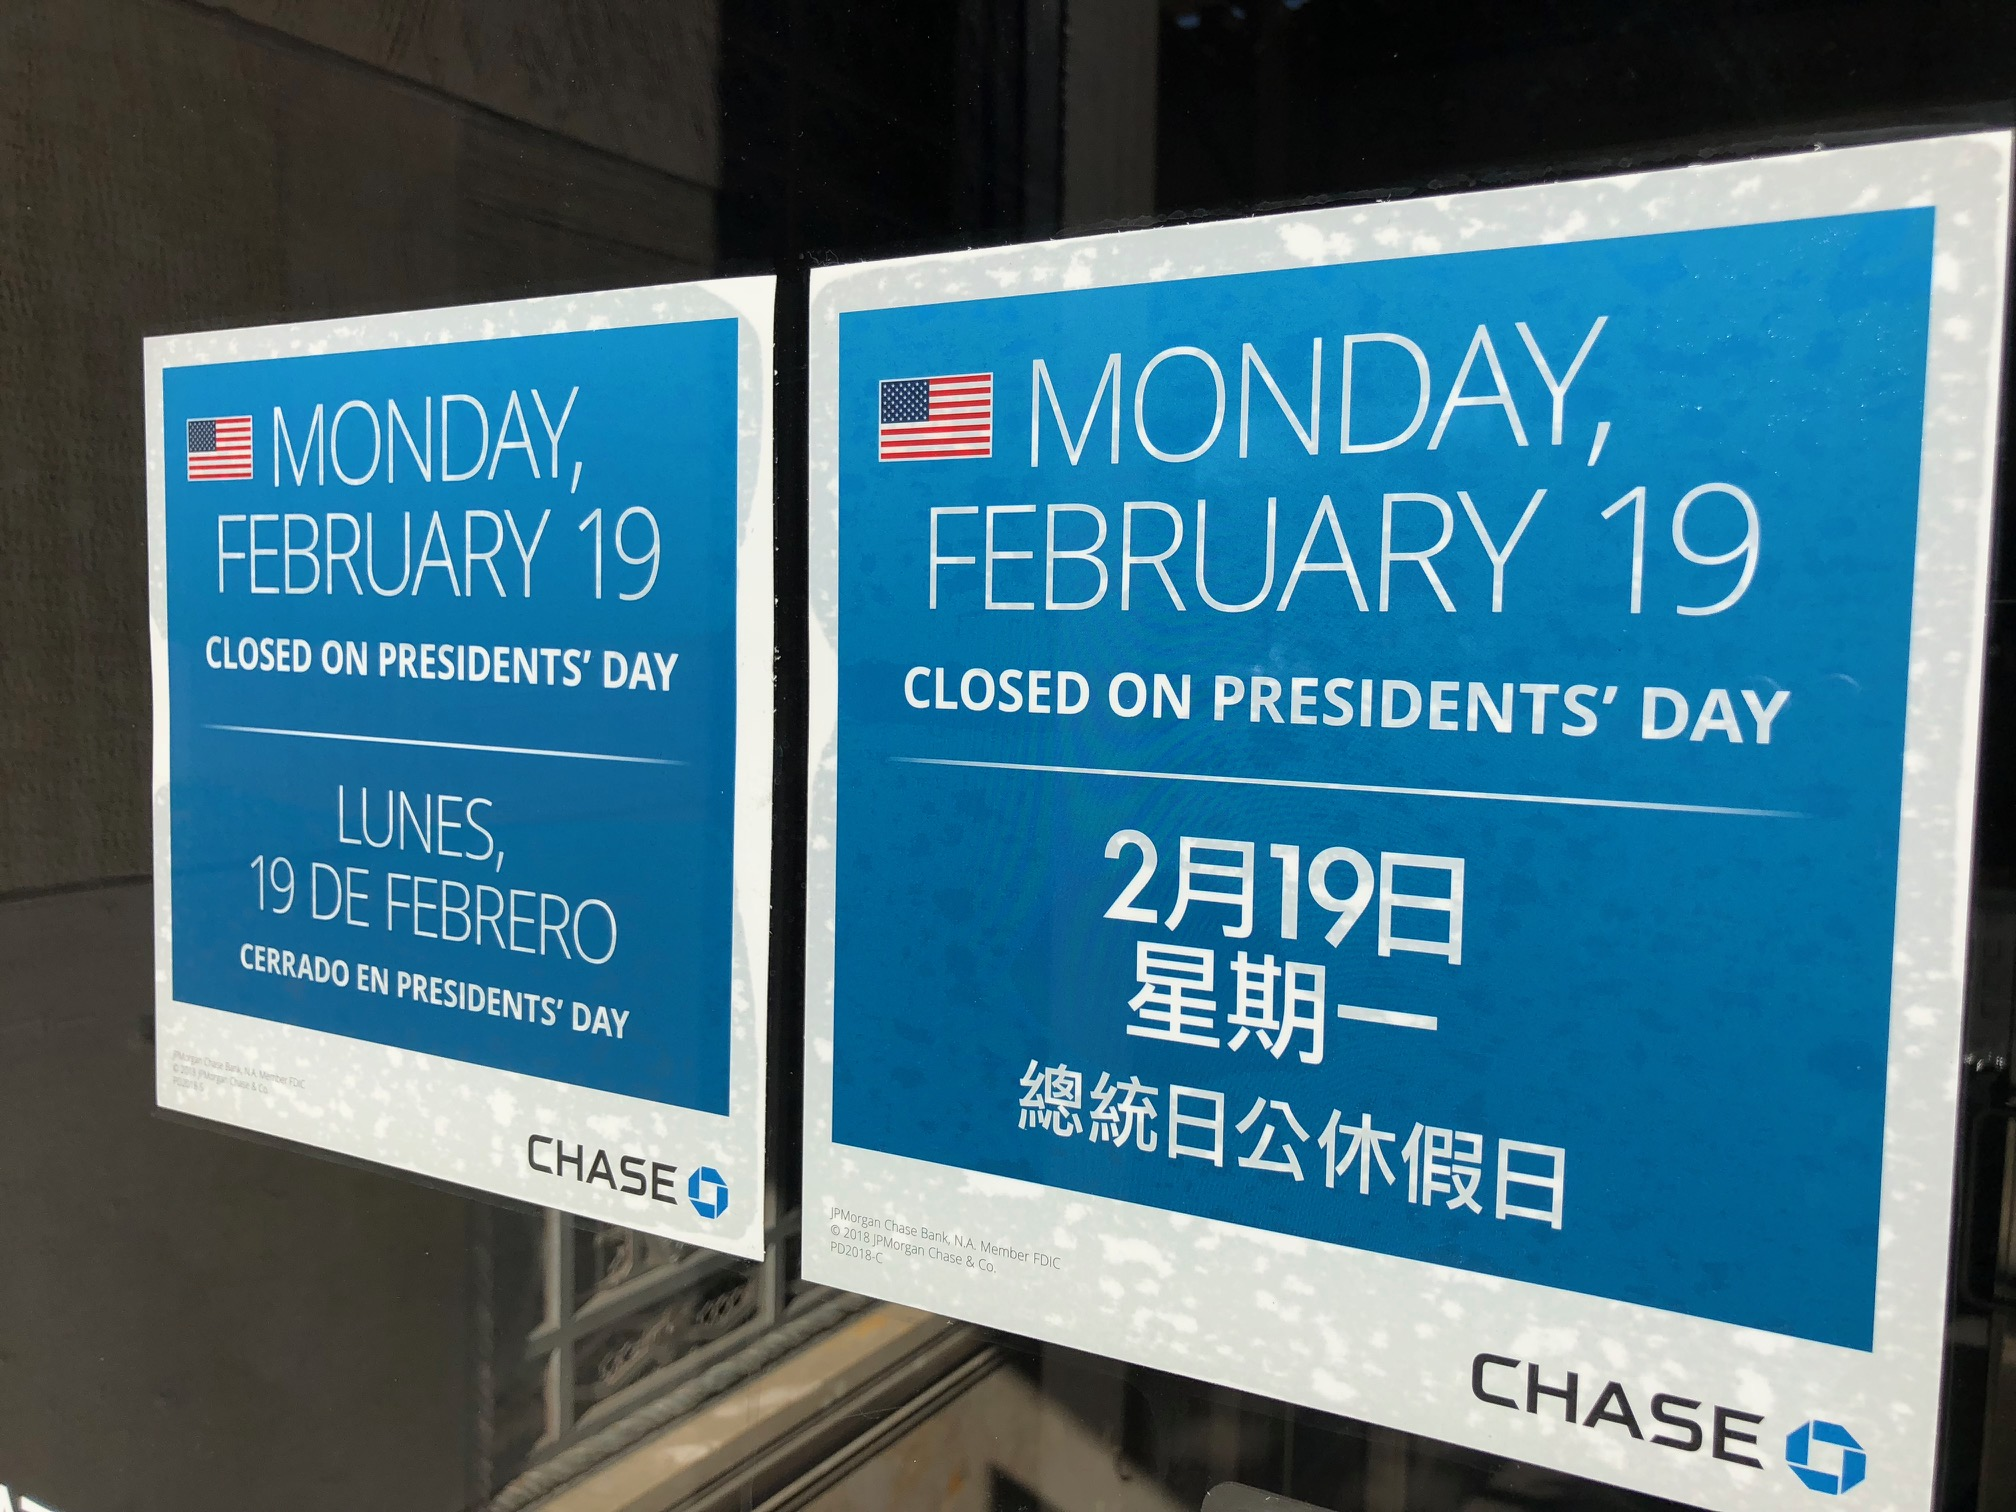 Are Banks Closed on Presidents' Day?